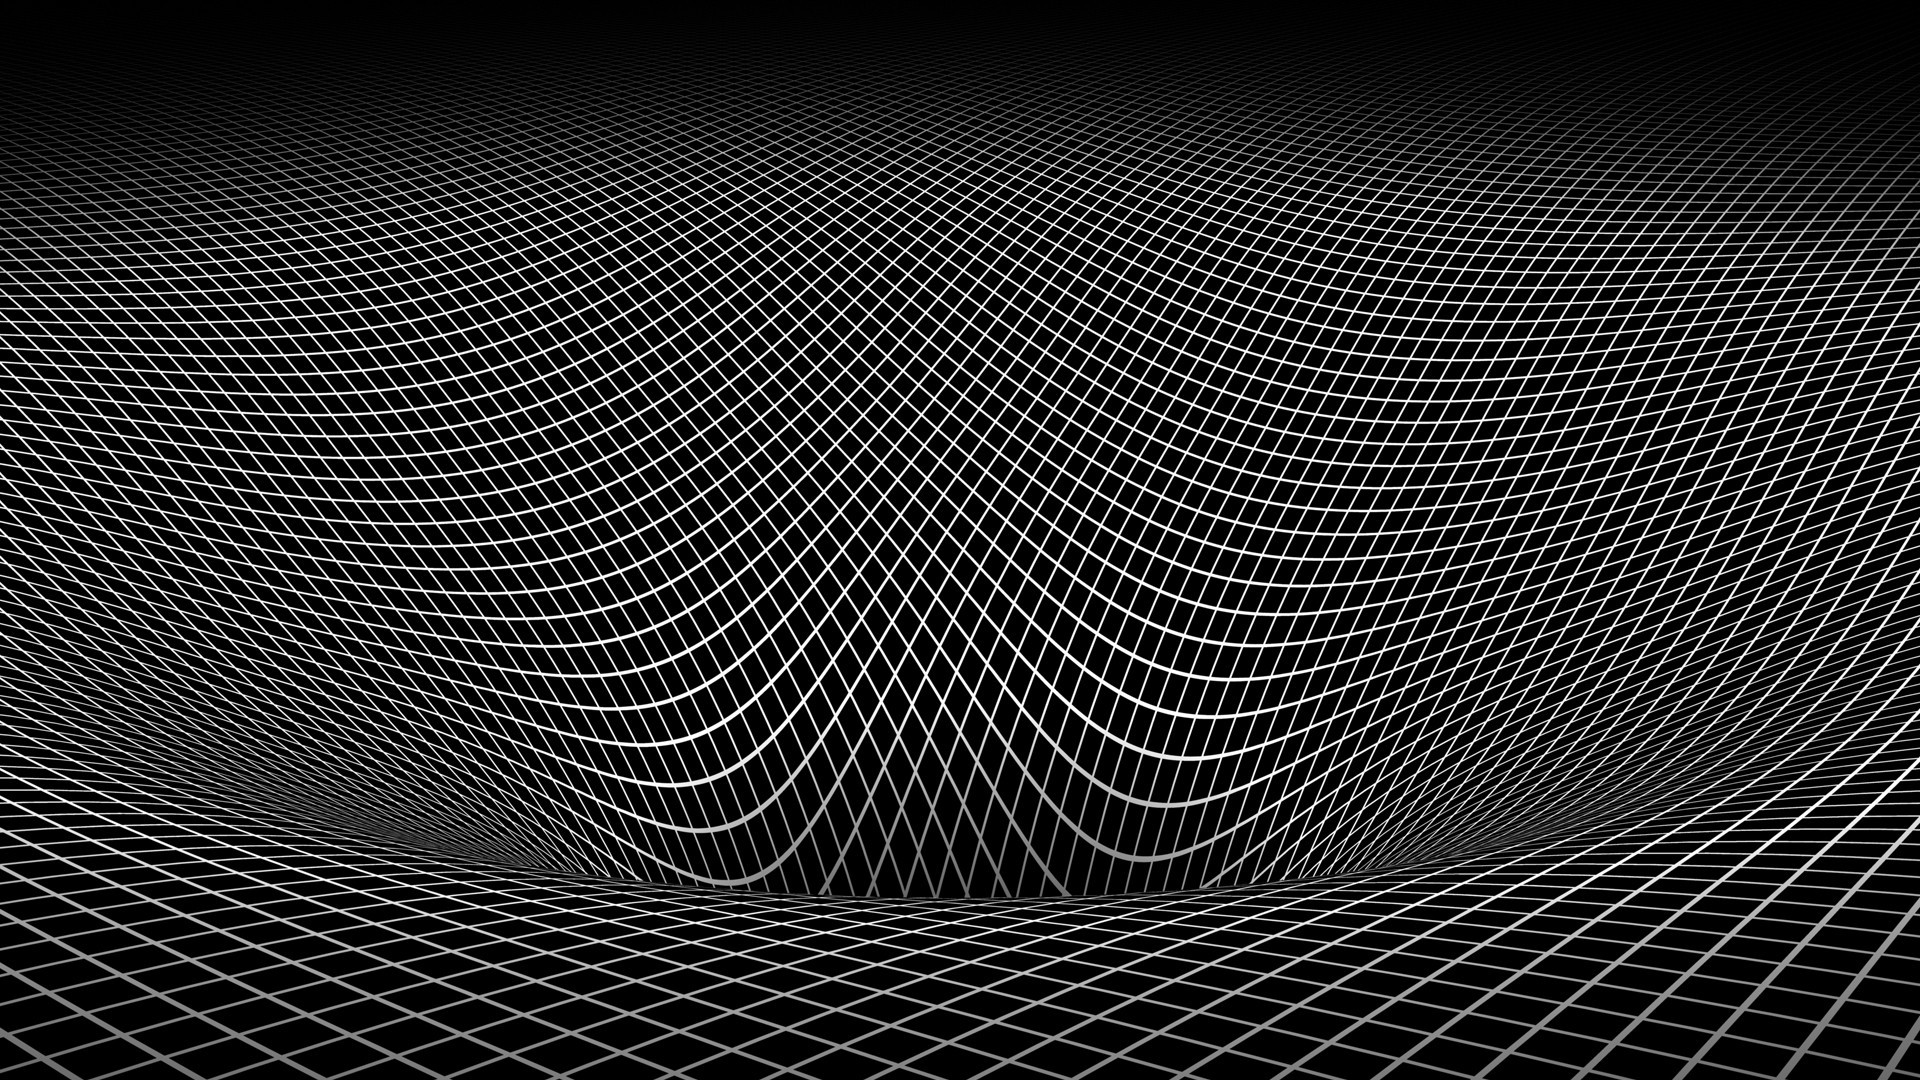 Black and White 3D Wallpaper - WallpaperSafari